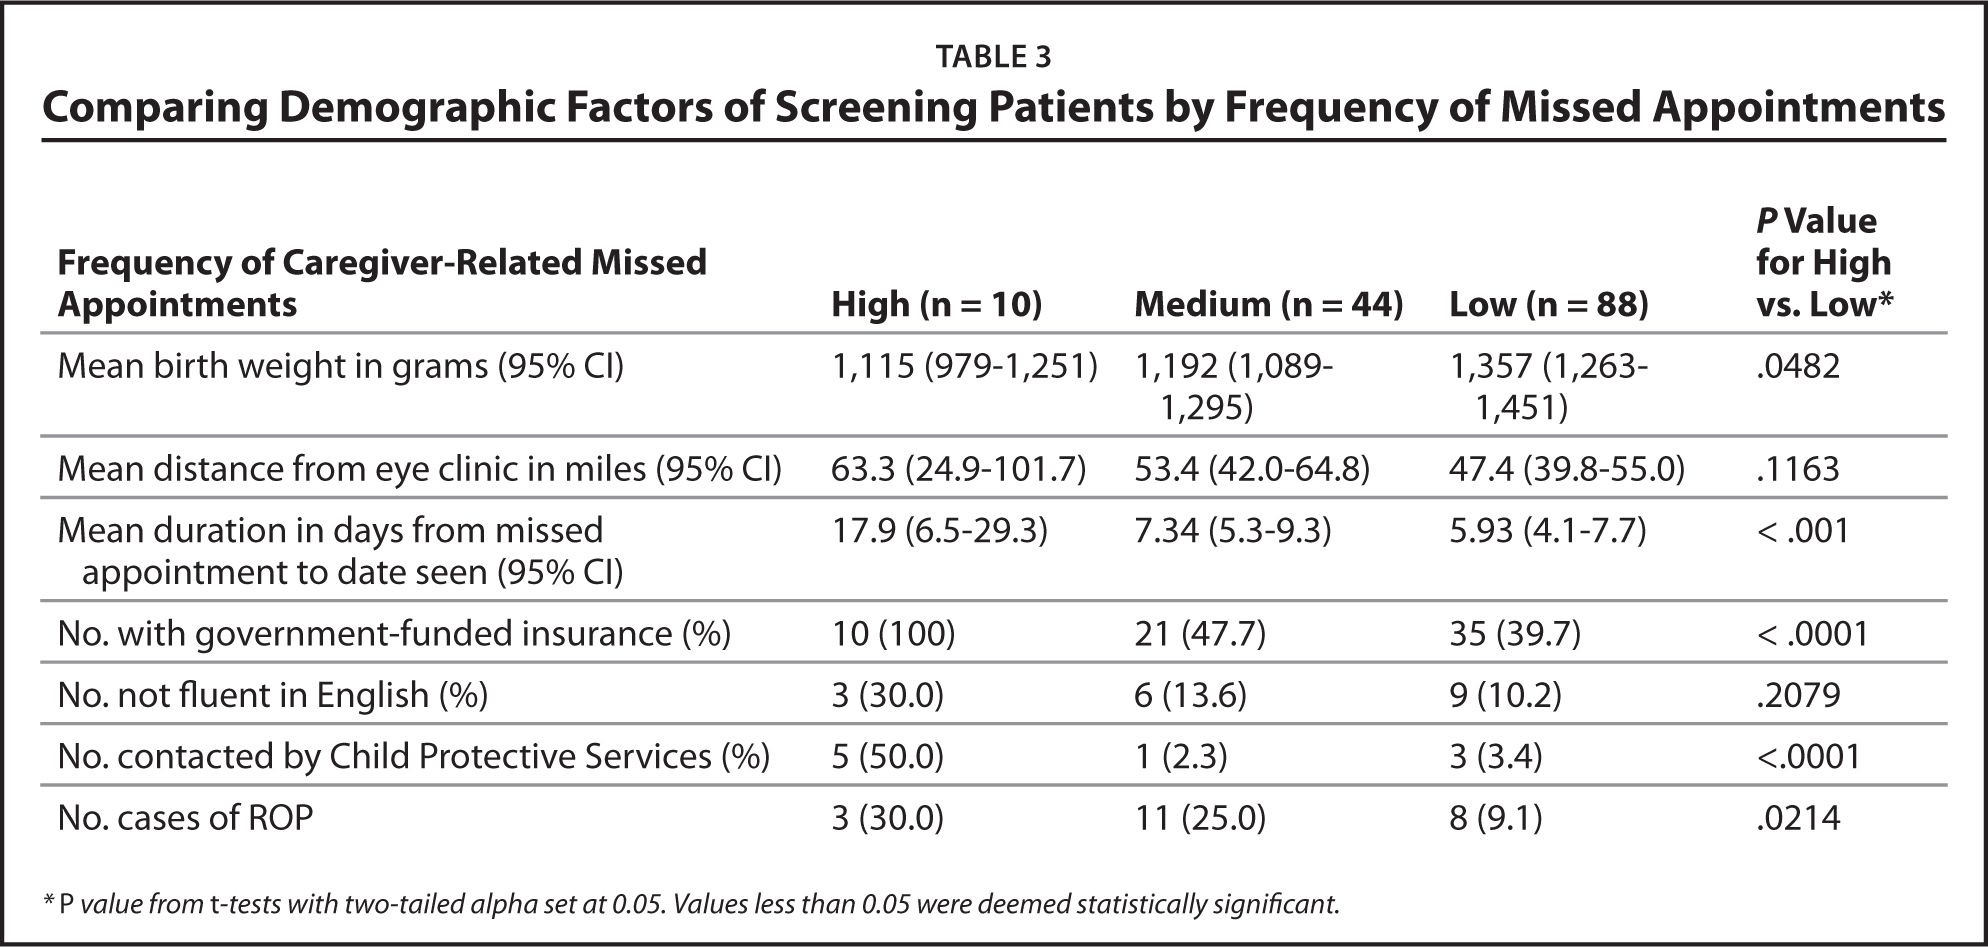 Comparing Demographic Factors of Screening Patients by Frequency of Missed Appointments